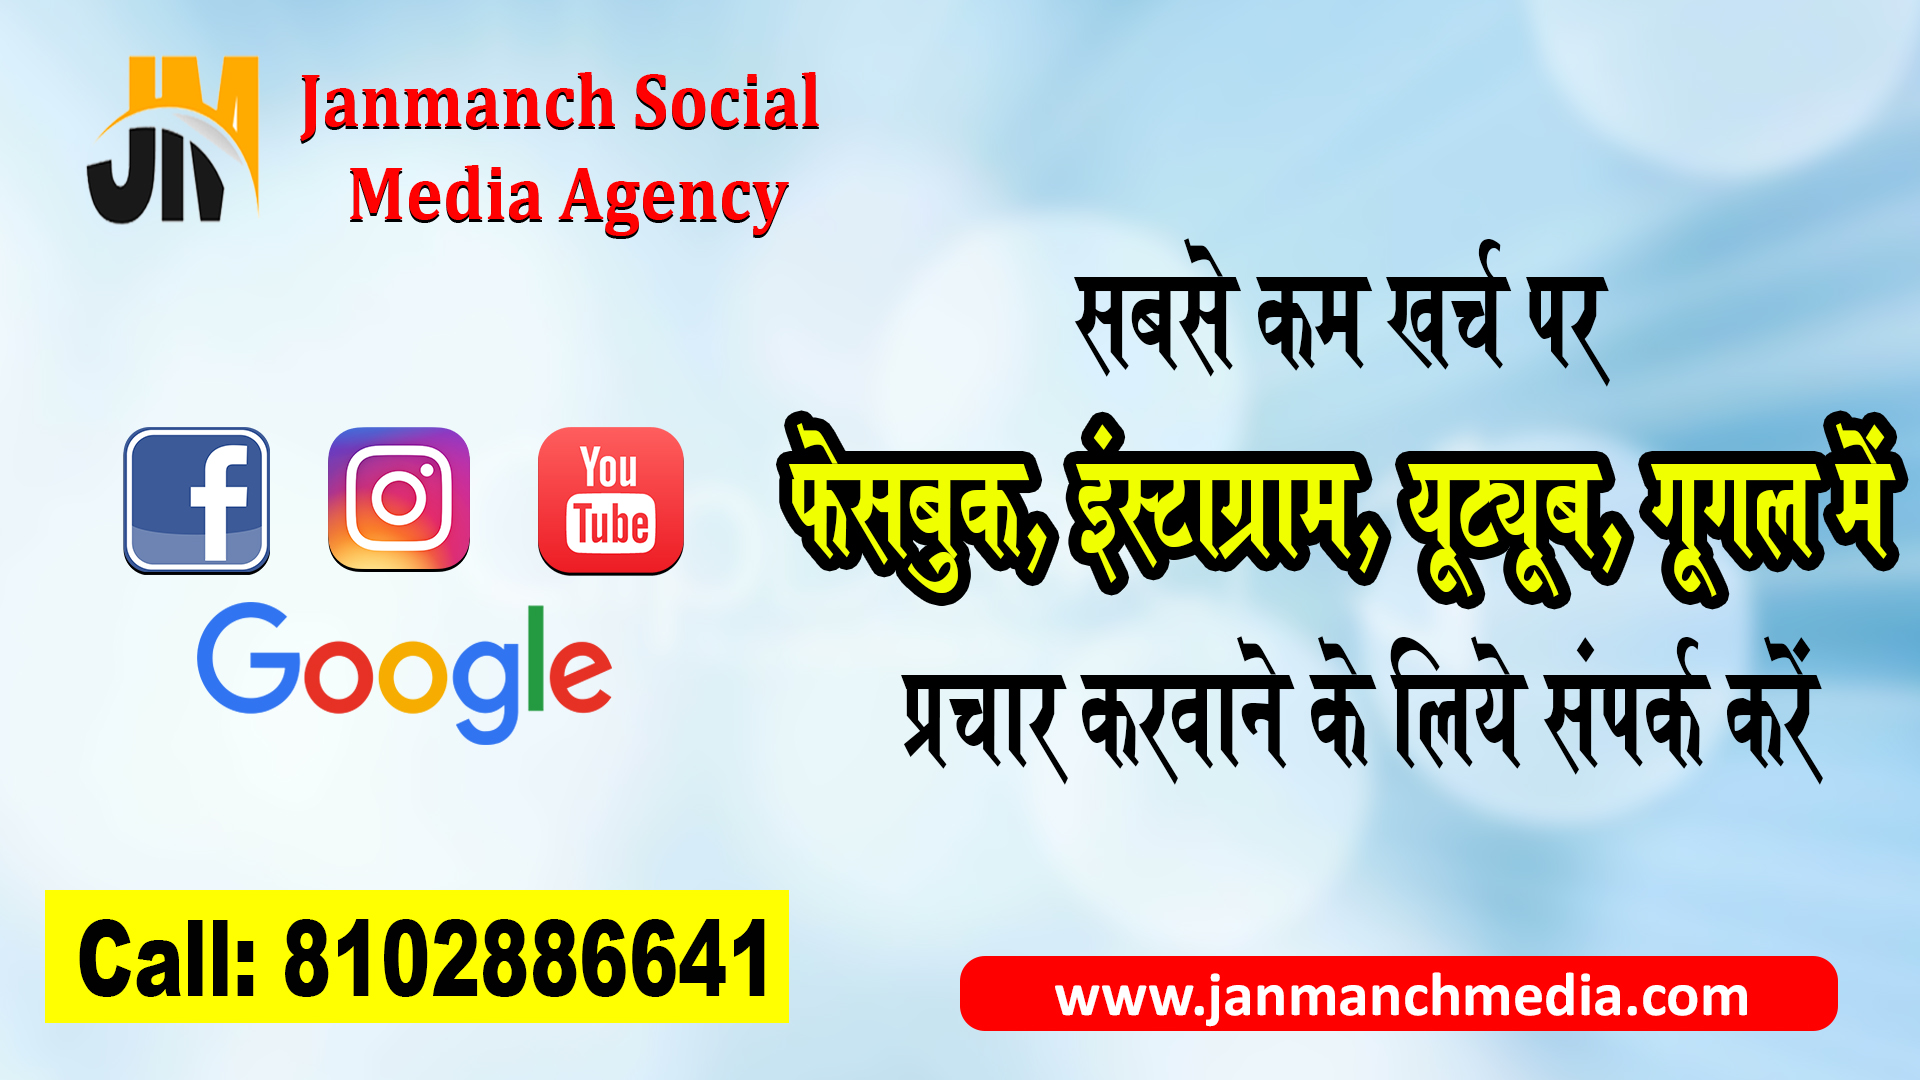 Janmanch Social Media Agency